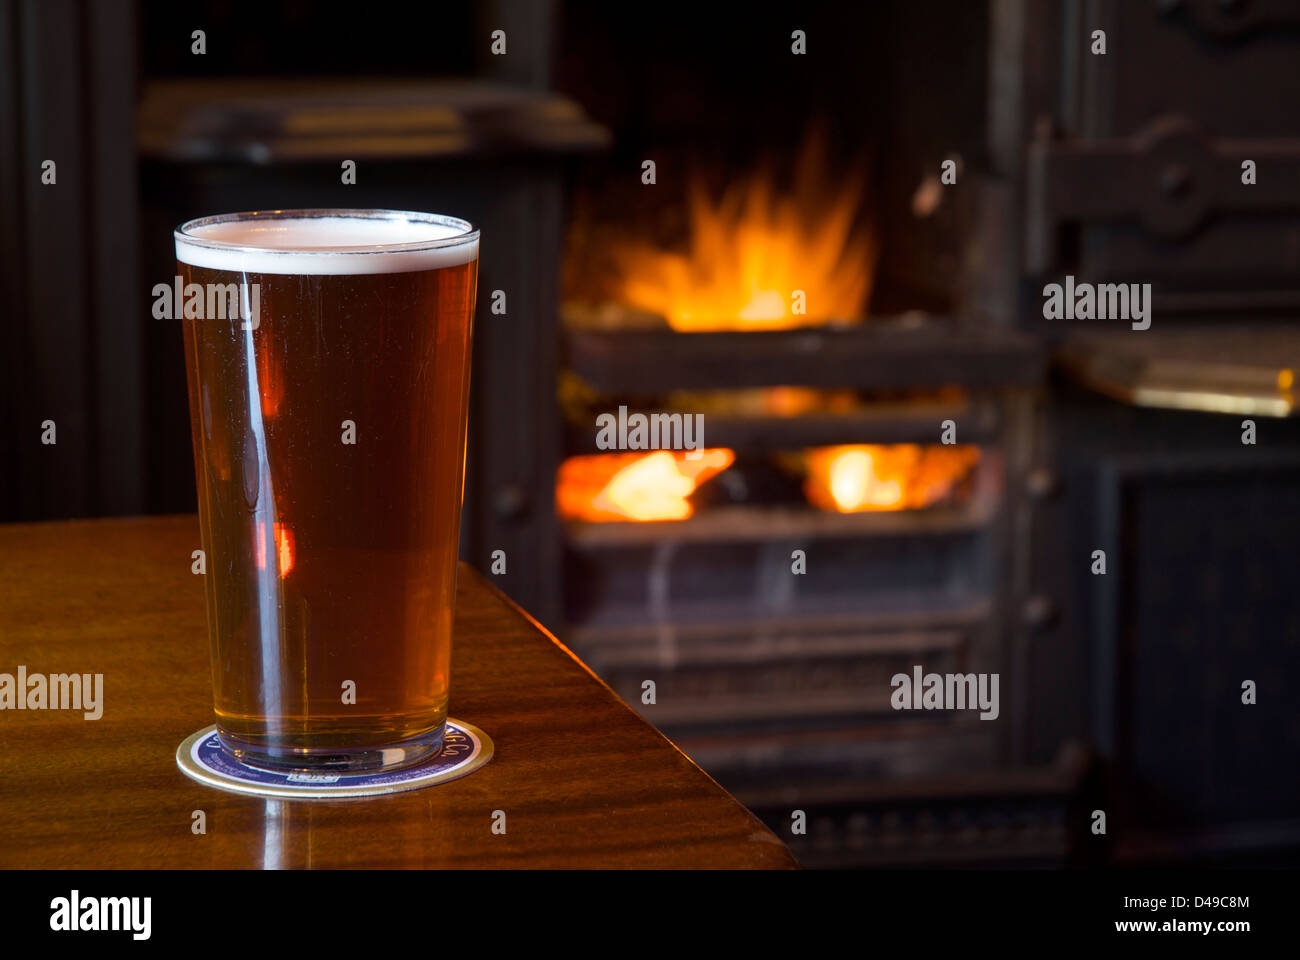 a-pint-of-bitter-on-a-pub-table-with-open-fire-in-the-background-D49C8M.jpg